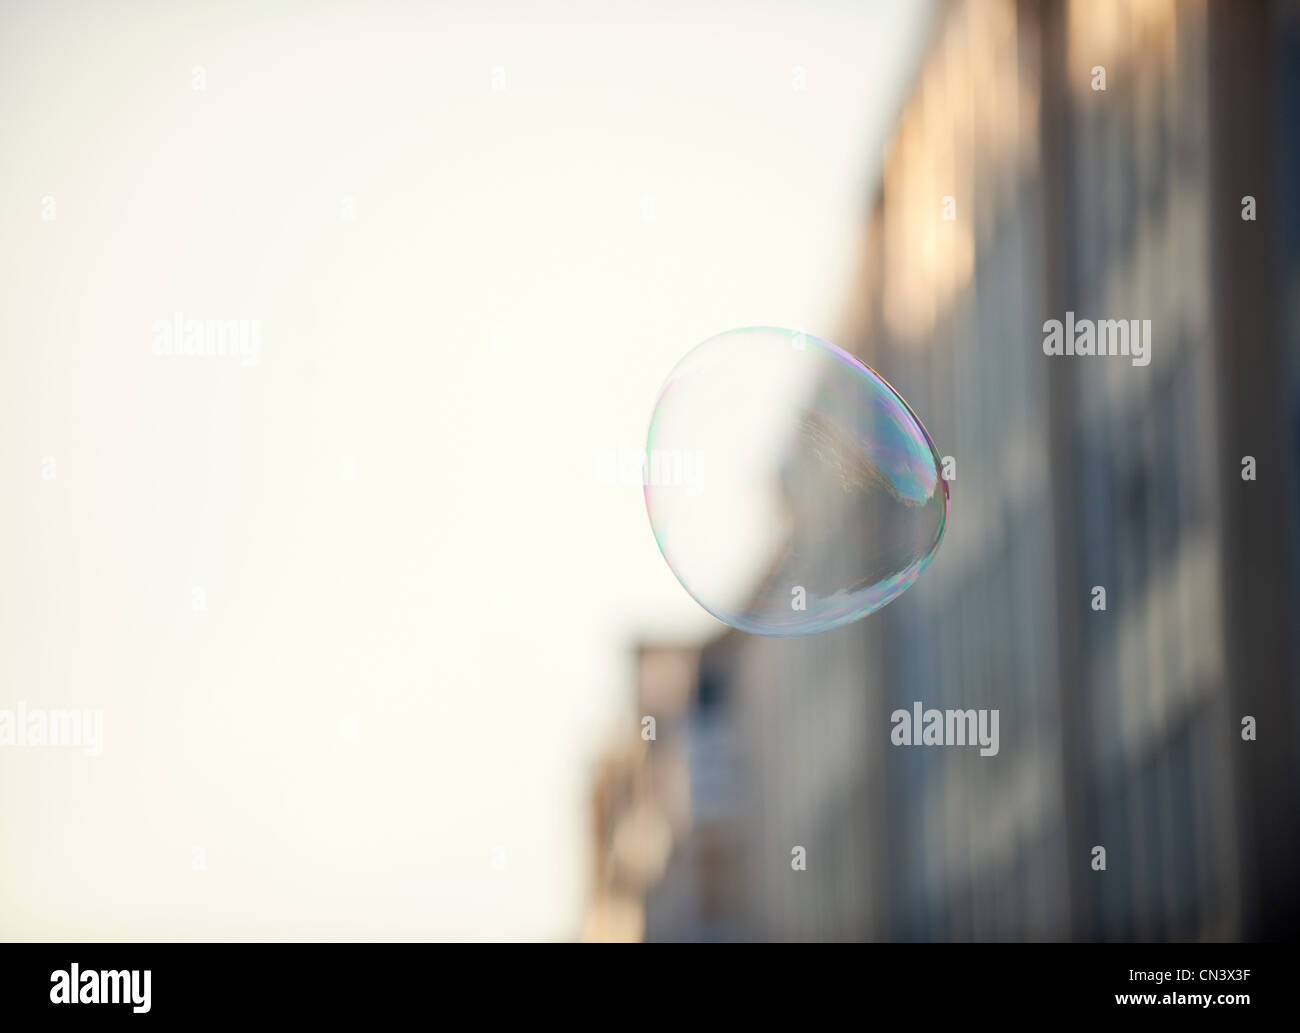 A bubble floating in an urban environment - Stock Image